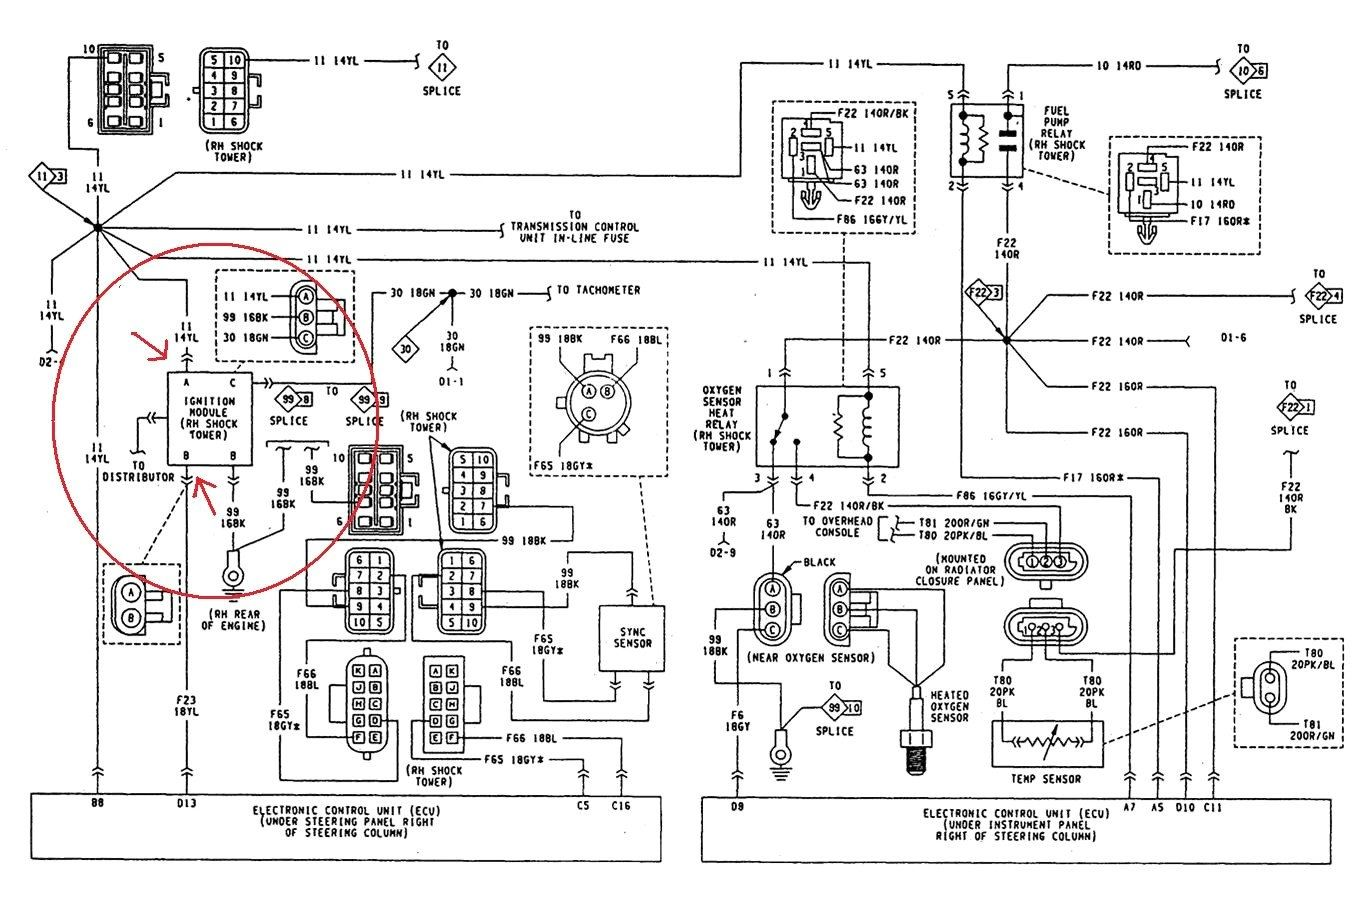 hight resolution of 1990 jeep wiring diagram wiring diagram 1990 jeep yj vacuum diagram 1990 jeep wrangler 4 2